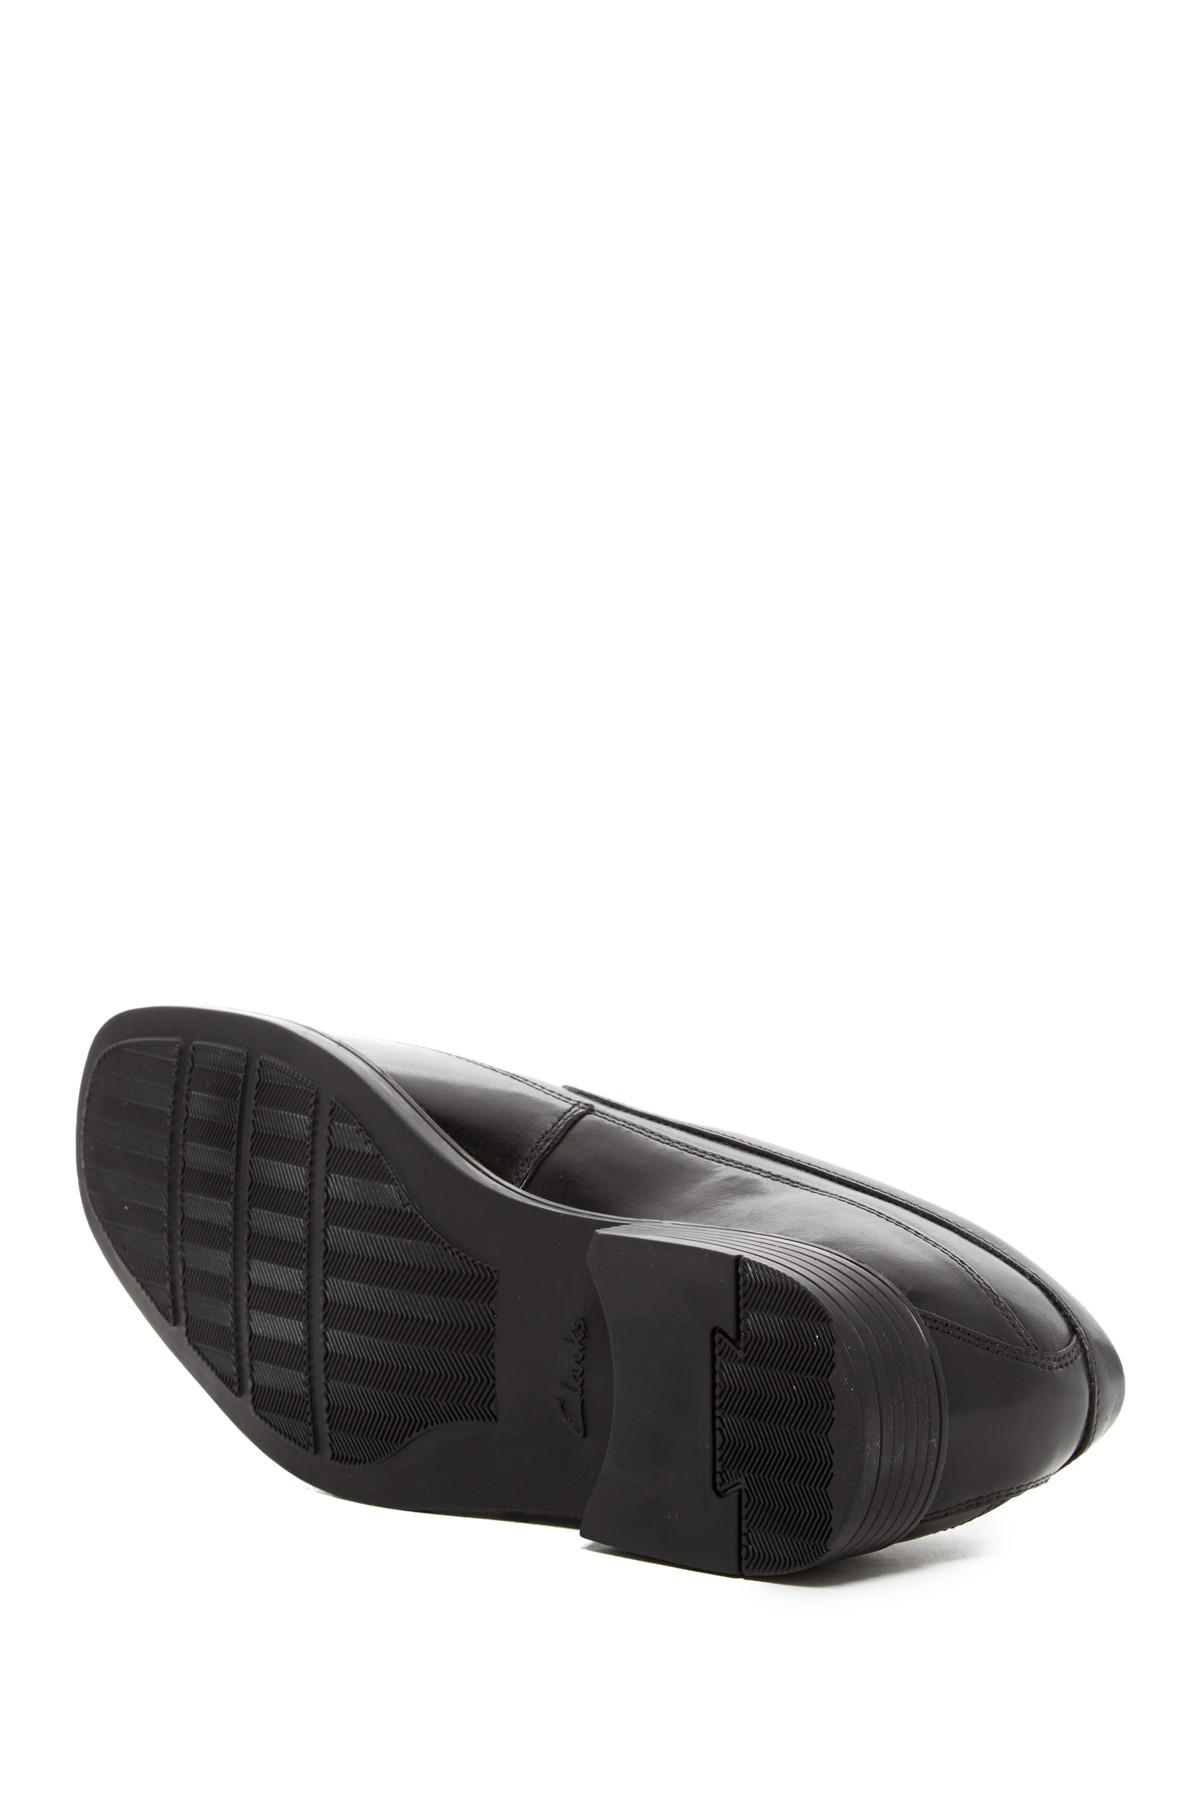 d6d115850ad ... Free Leather Slip-on Loafer - Wide Width Available for Men. View  fullscreen